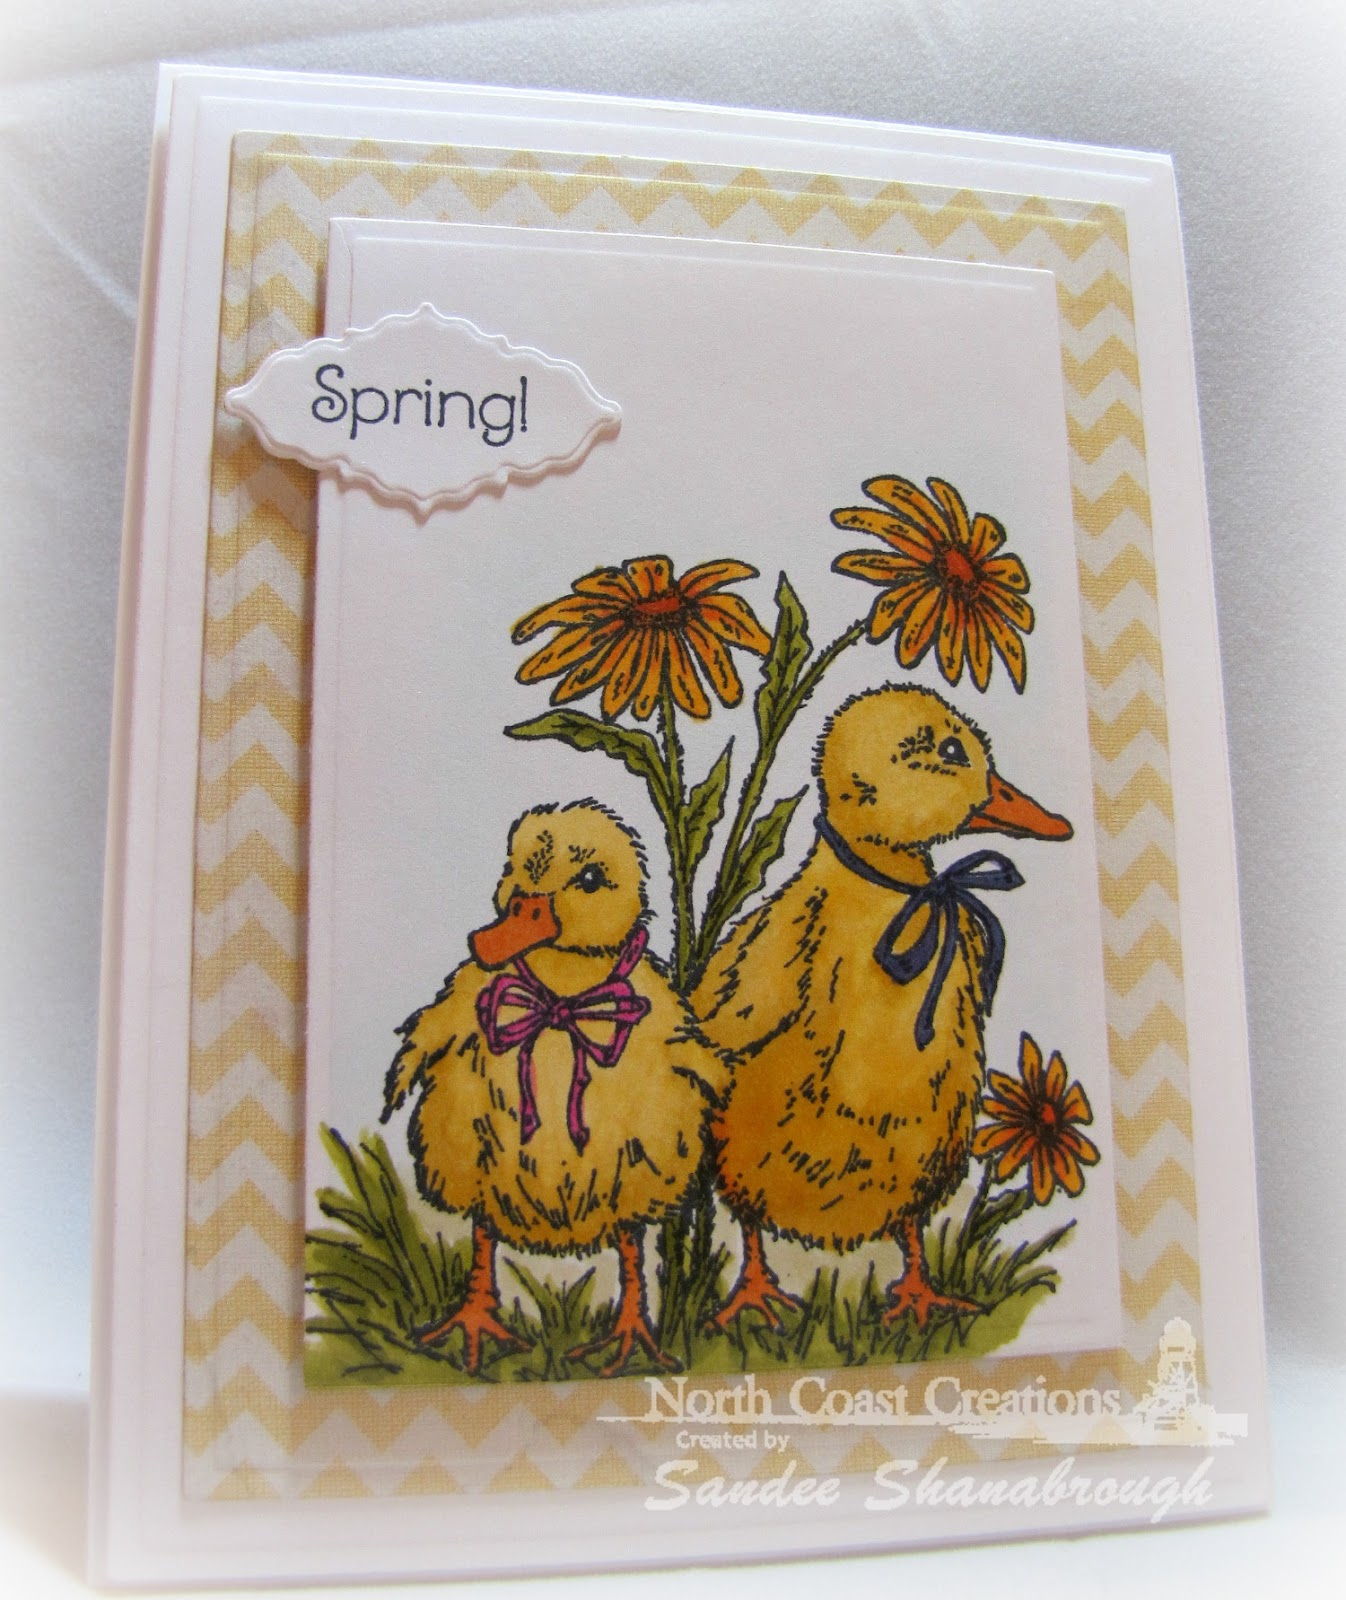 Stamps - North Coast Creations Happy Spring, ODBD Custom Ornate Borders & Flower Dies